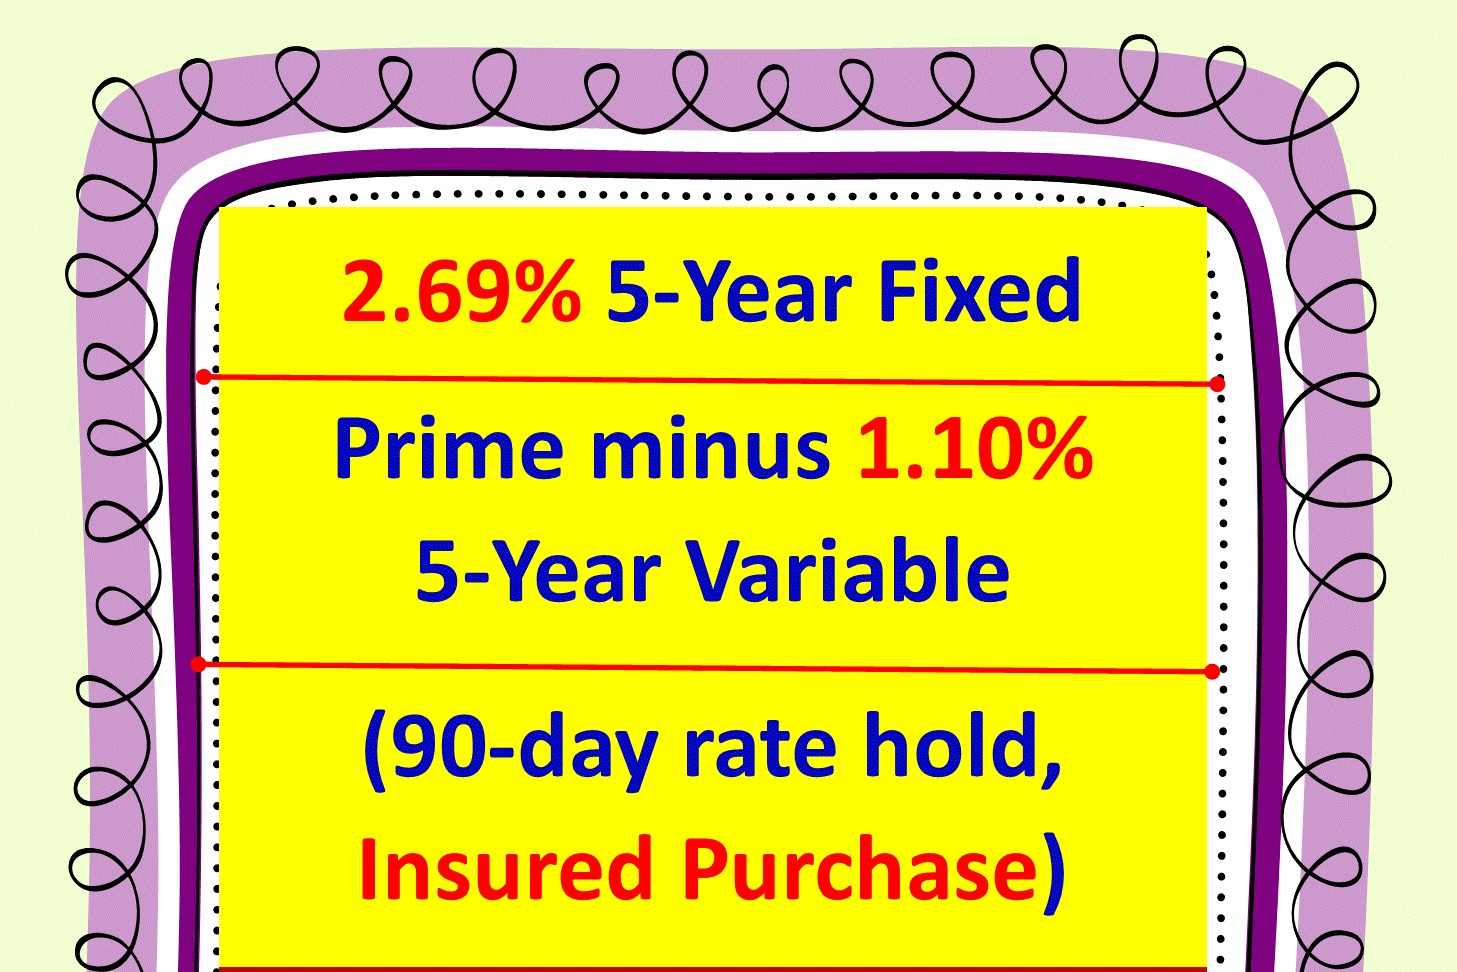 5-Year Best Fixed and Variable Rate for Insured Purchase